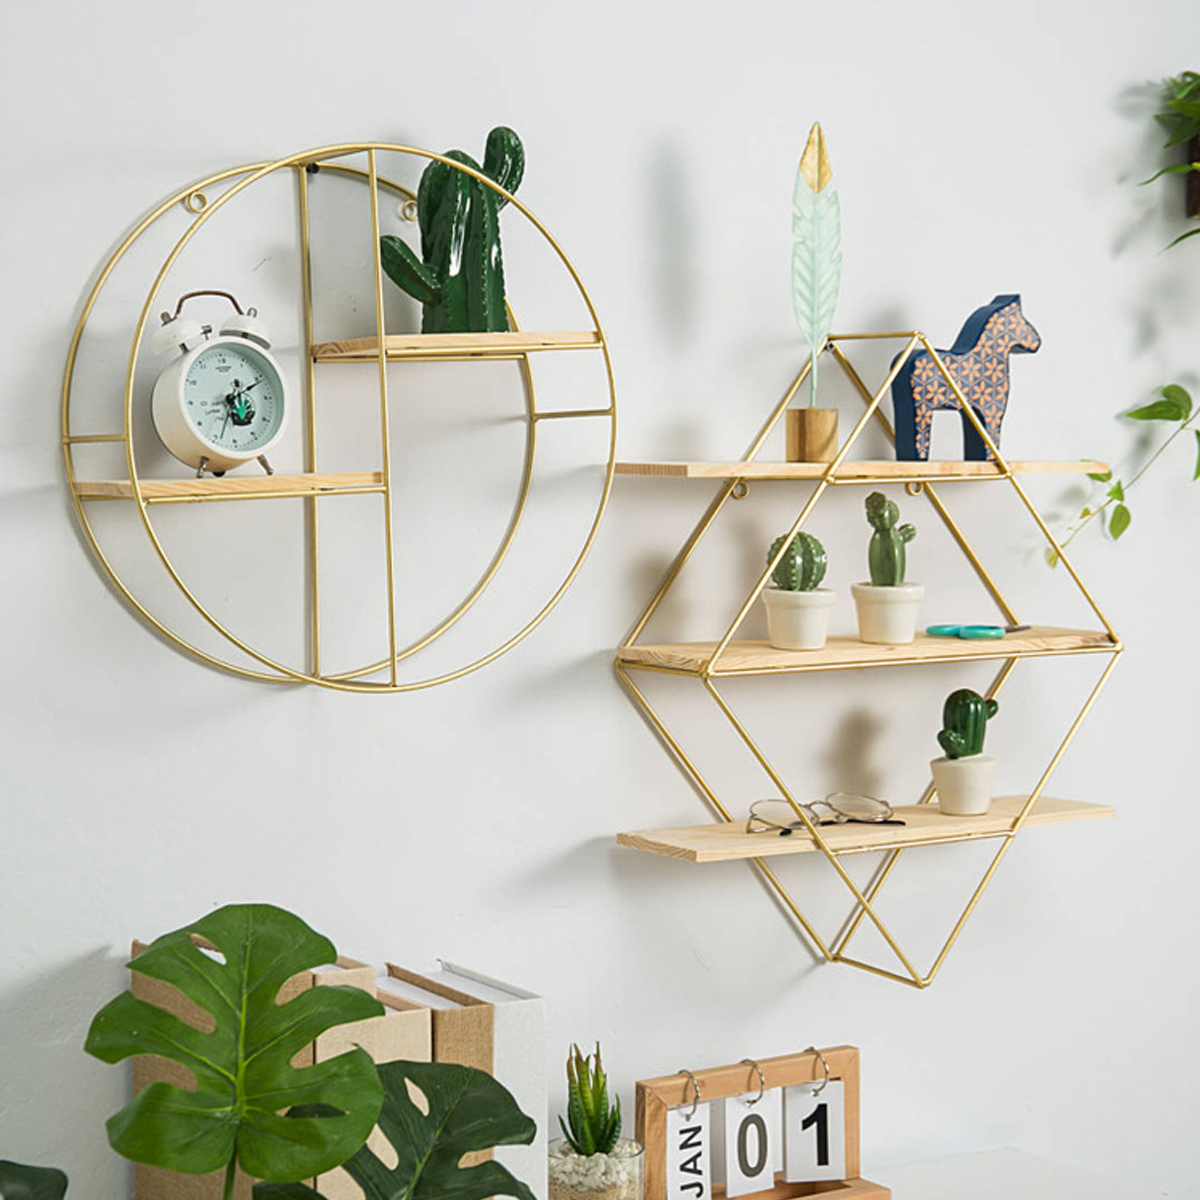 Metal Grid Wall Shelf Hanging Rack Bookcase Storage Holder Floating Display Shelves Home Decor Round Rhombus Triangle Aircraft Only Wall Shelf